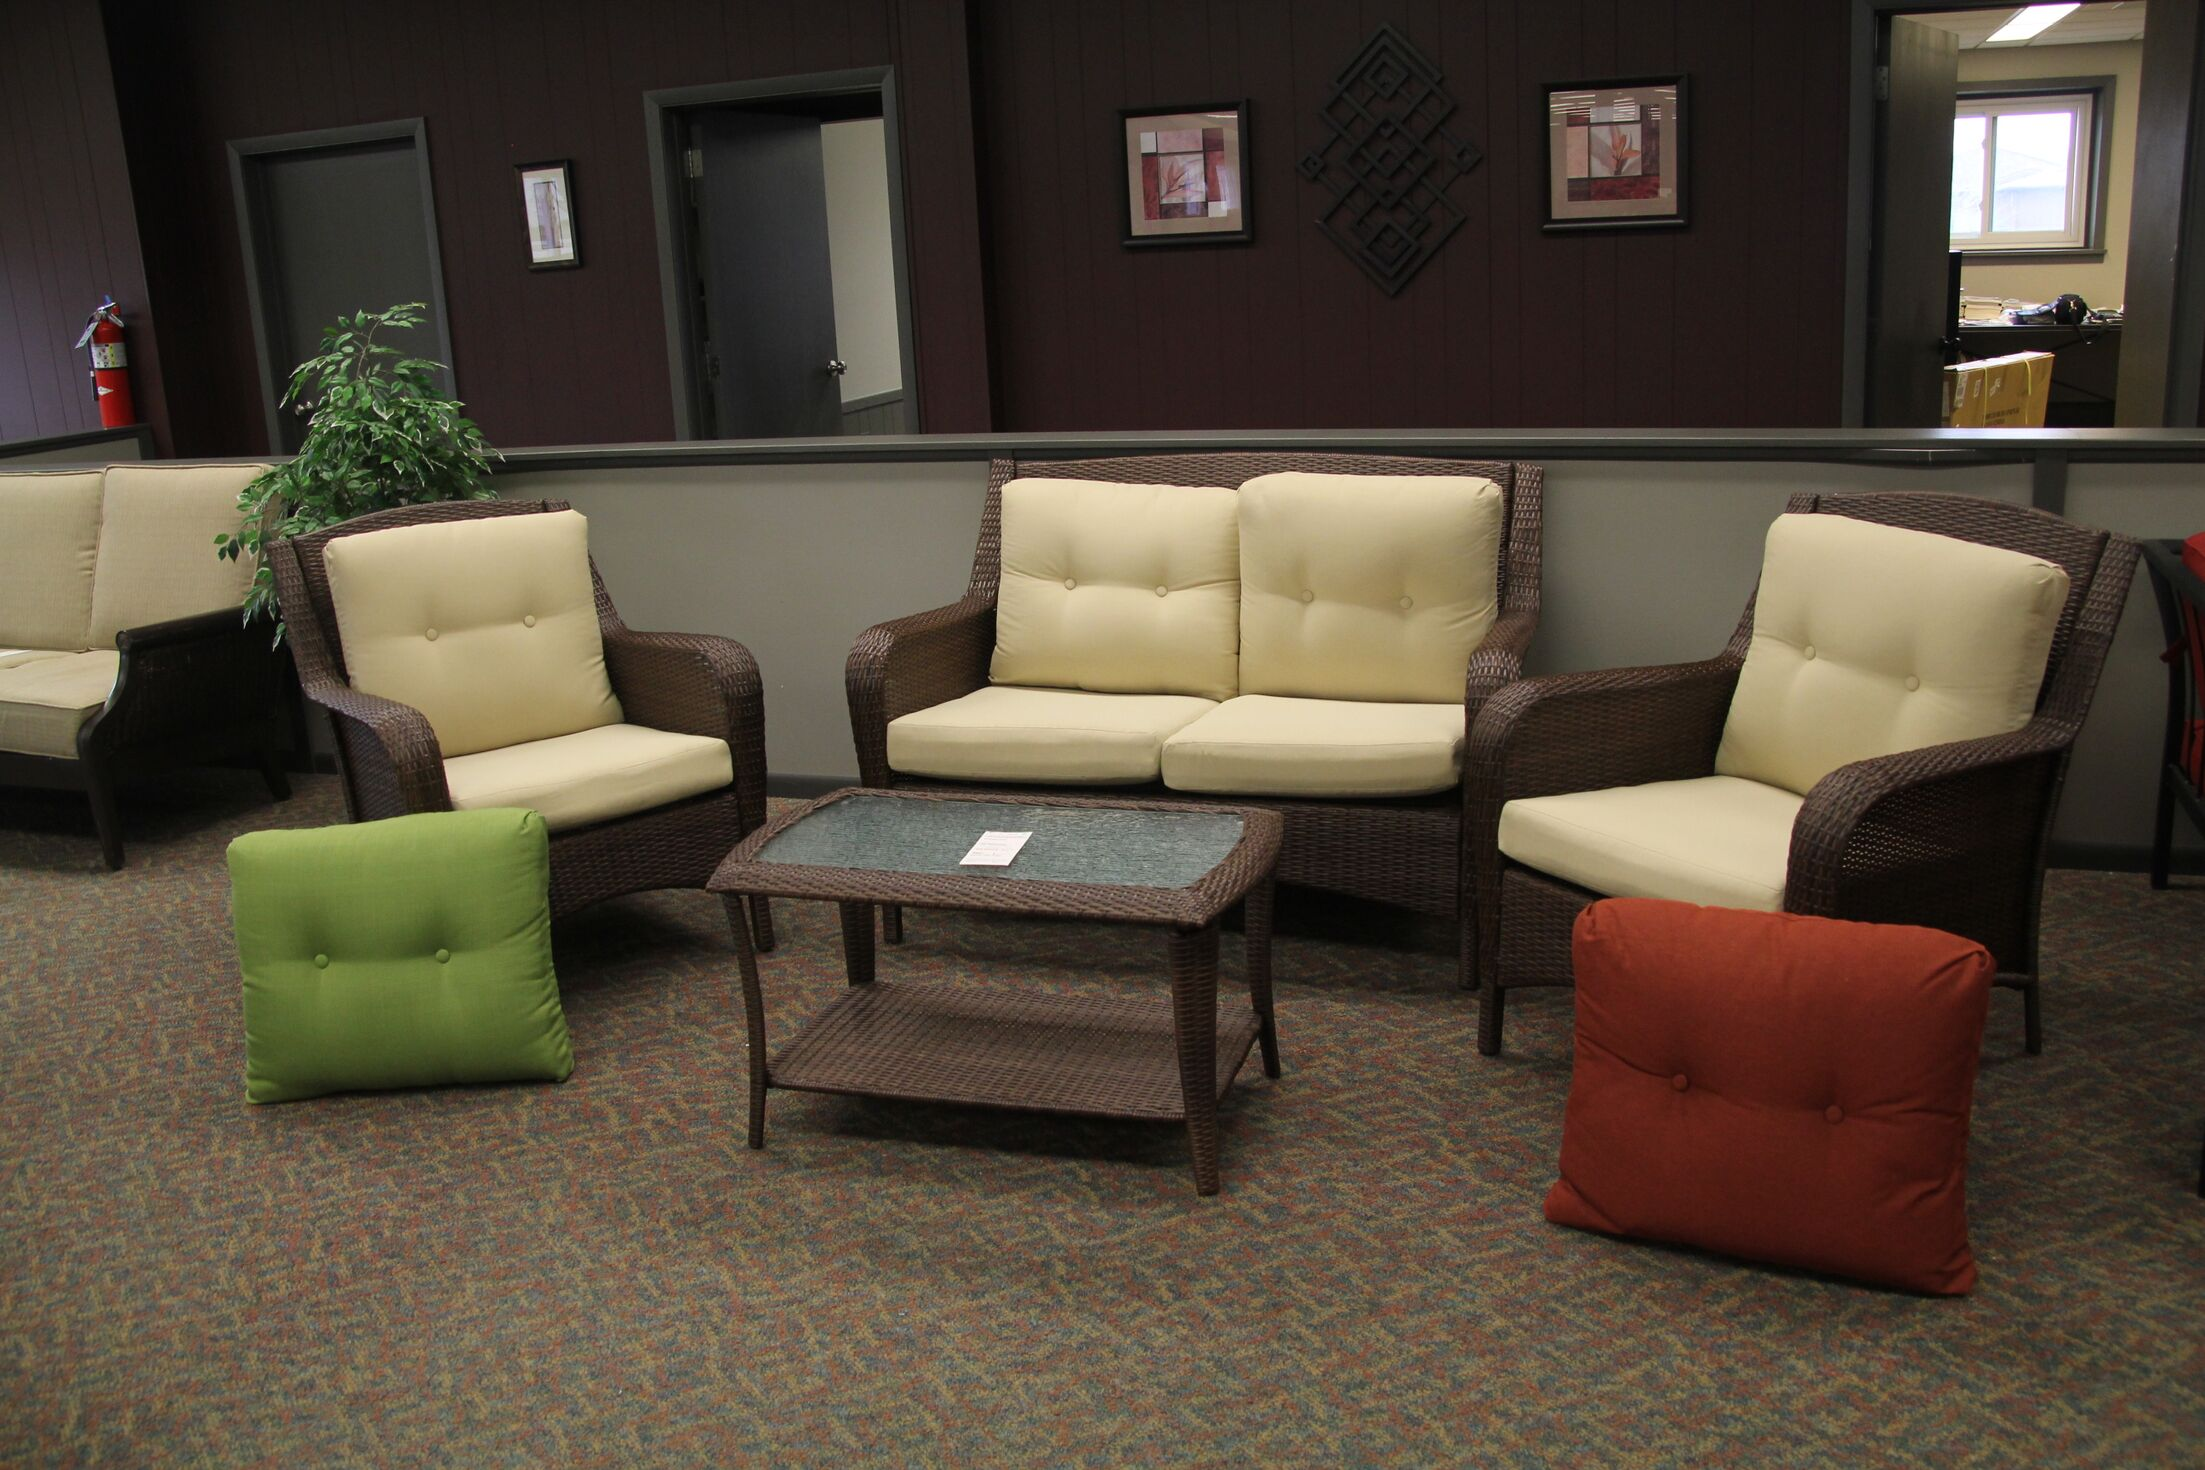 Woodview 4 Piece Rattan Sofa Seating Group with Cushions